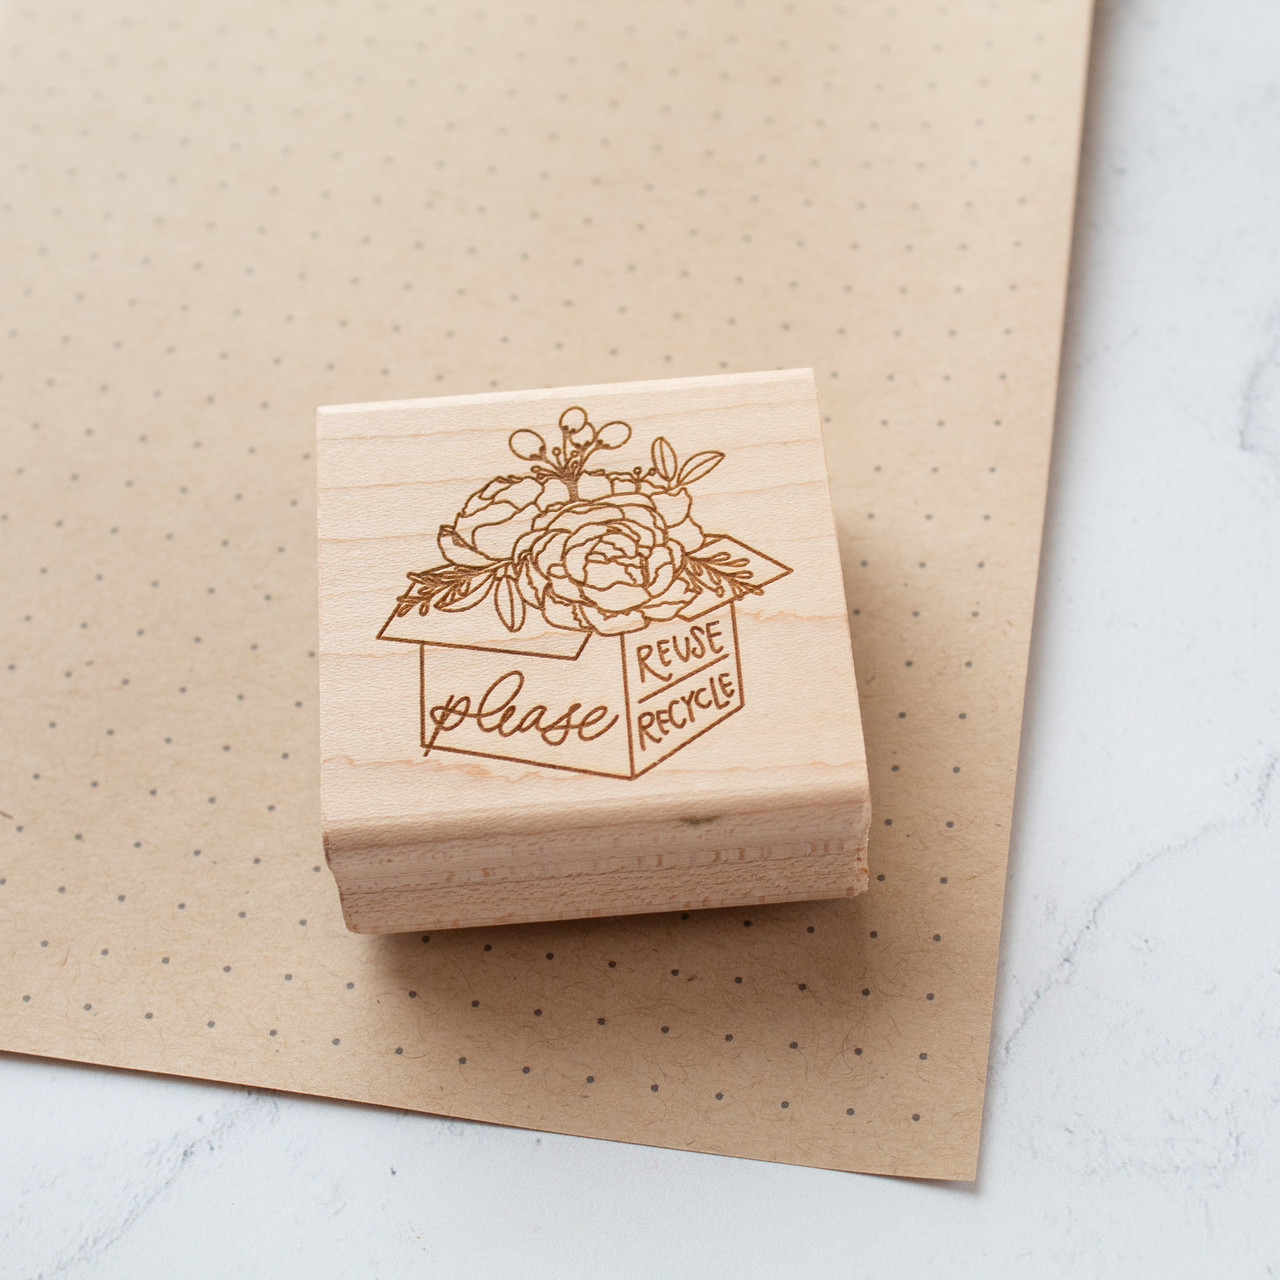 Hand Lettered Rubber Stamp Happy Mail Stamp DIY Shipping Packaging